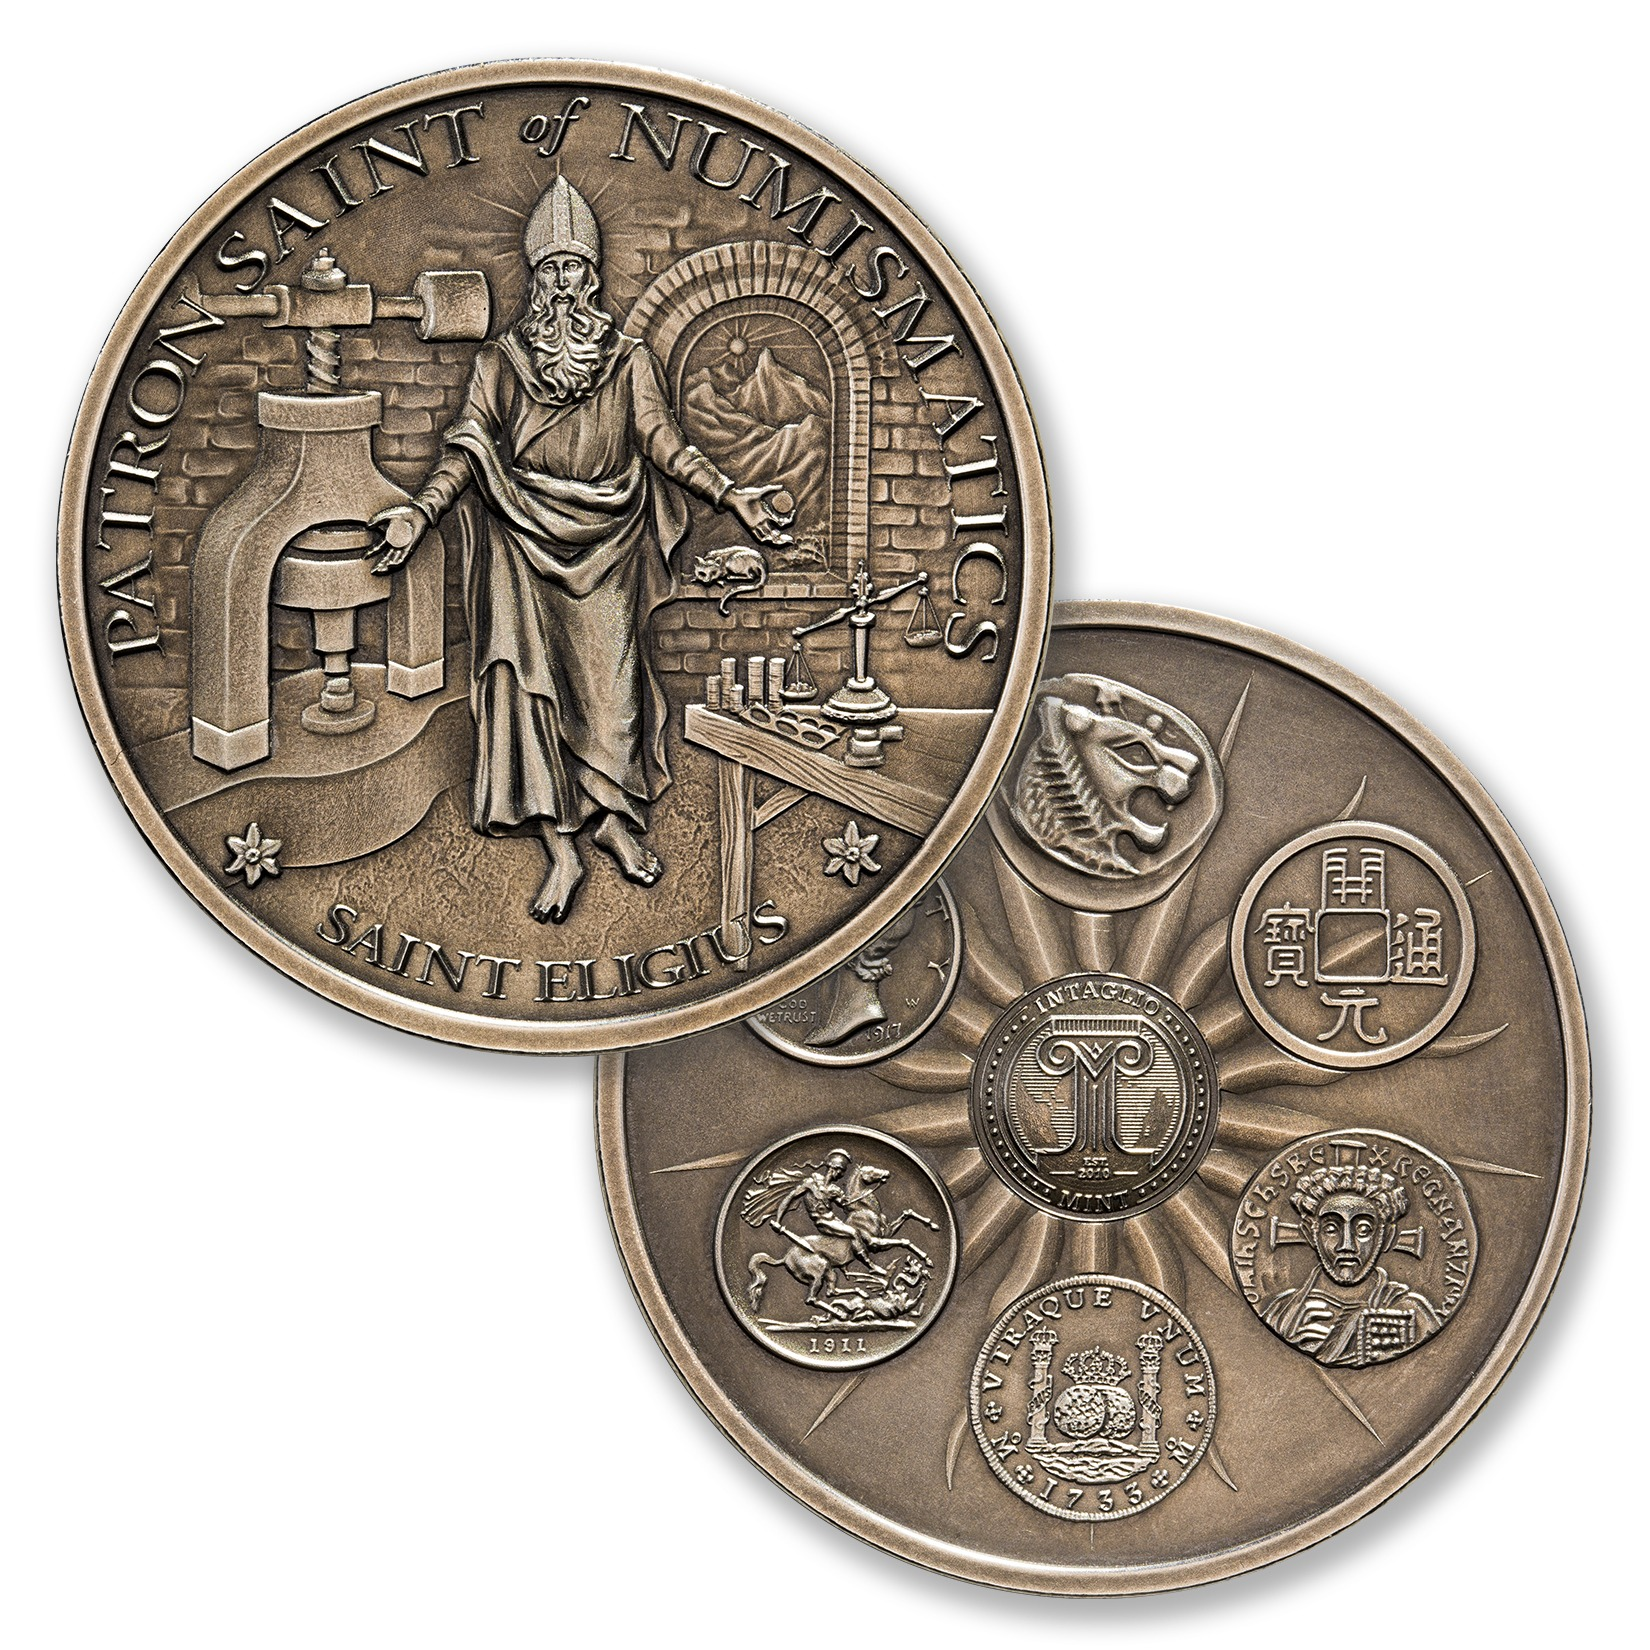 SAINT ELIGIUS – 2 TROY OUNCE – 50MM – LIMITED MINTAGE: 500 (ANTIQUED)